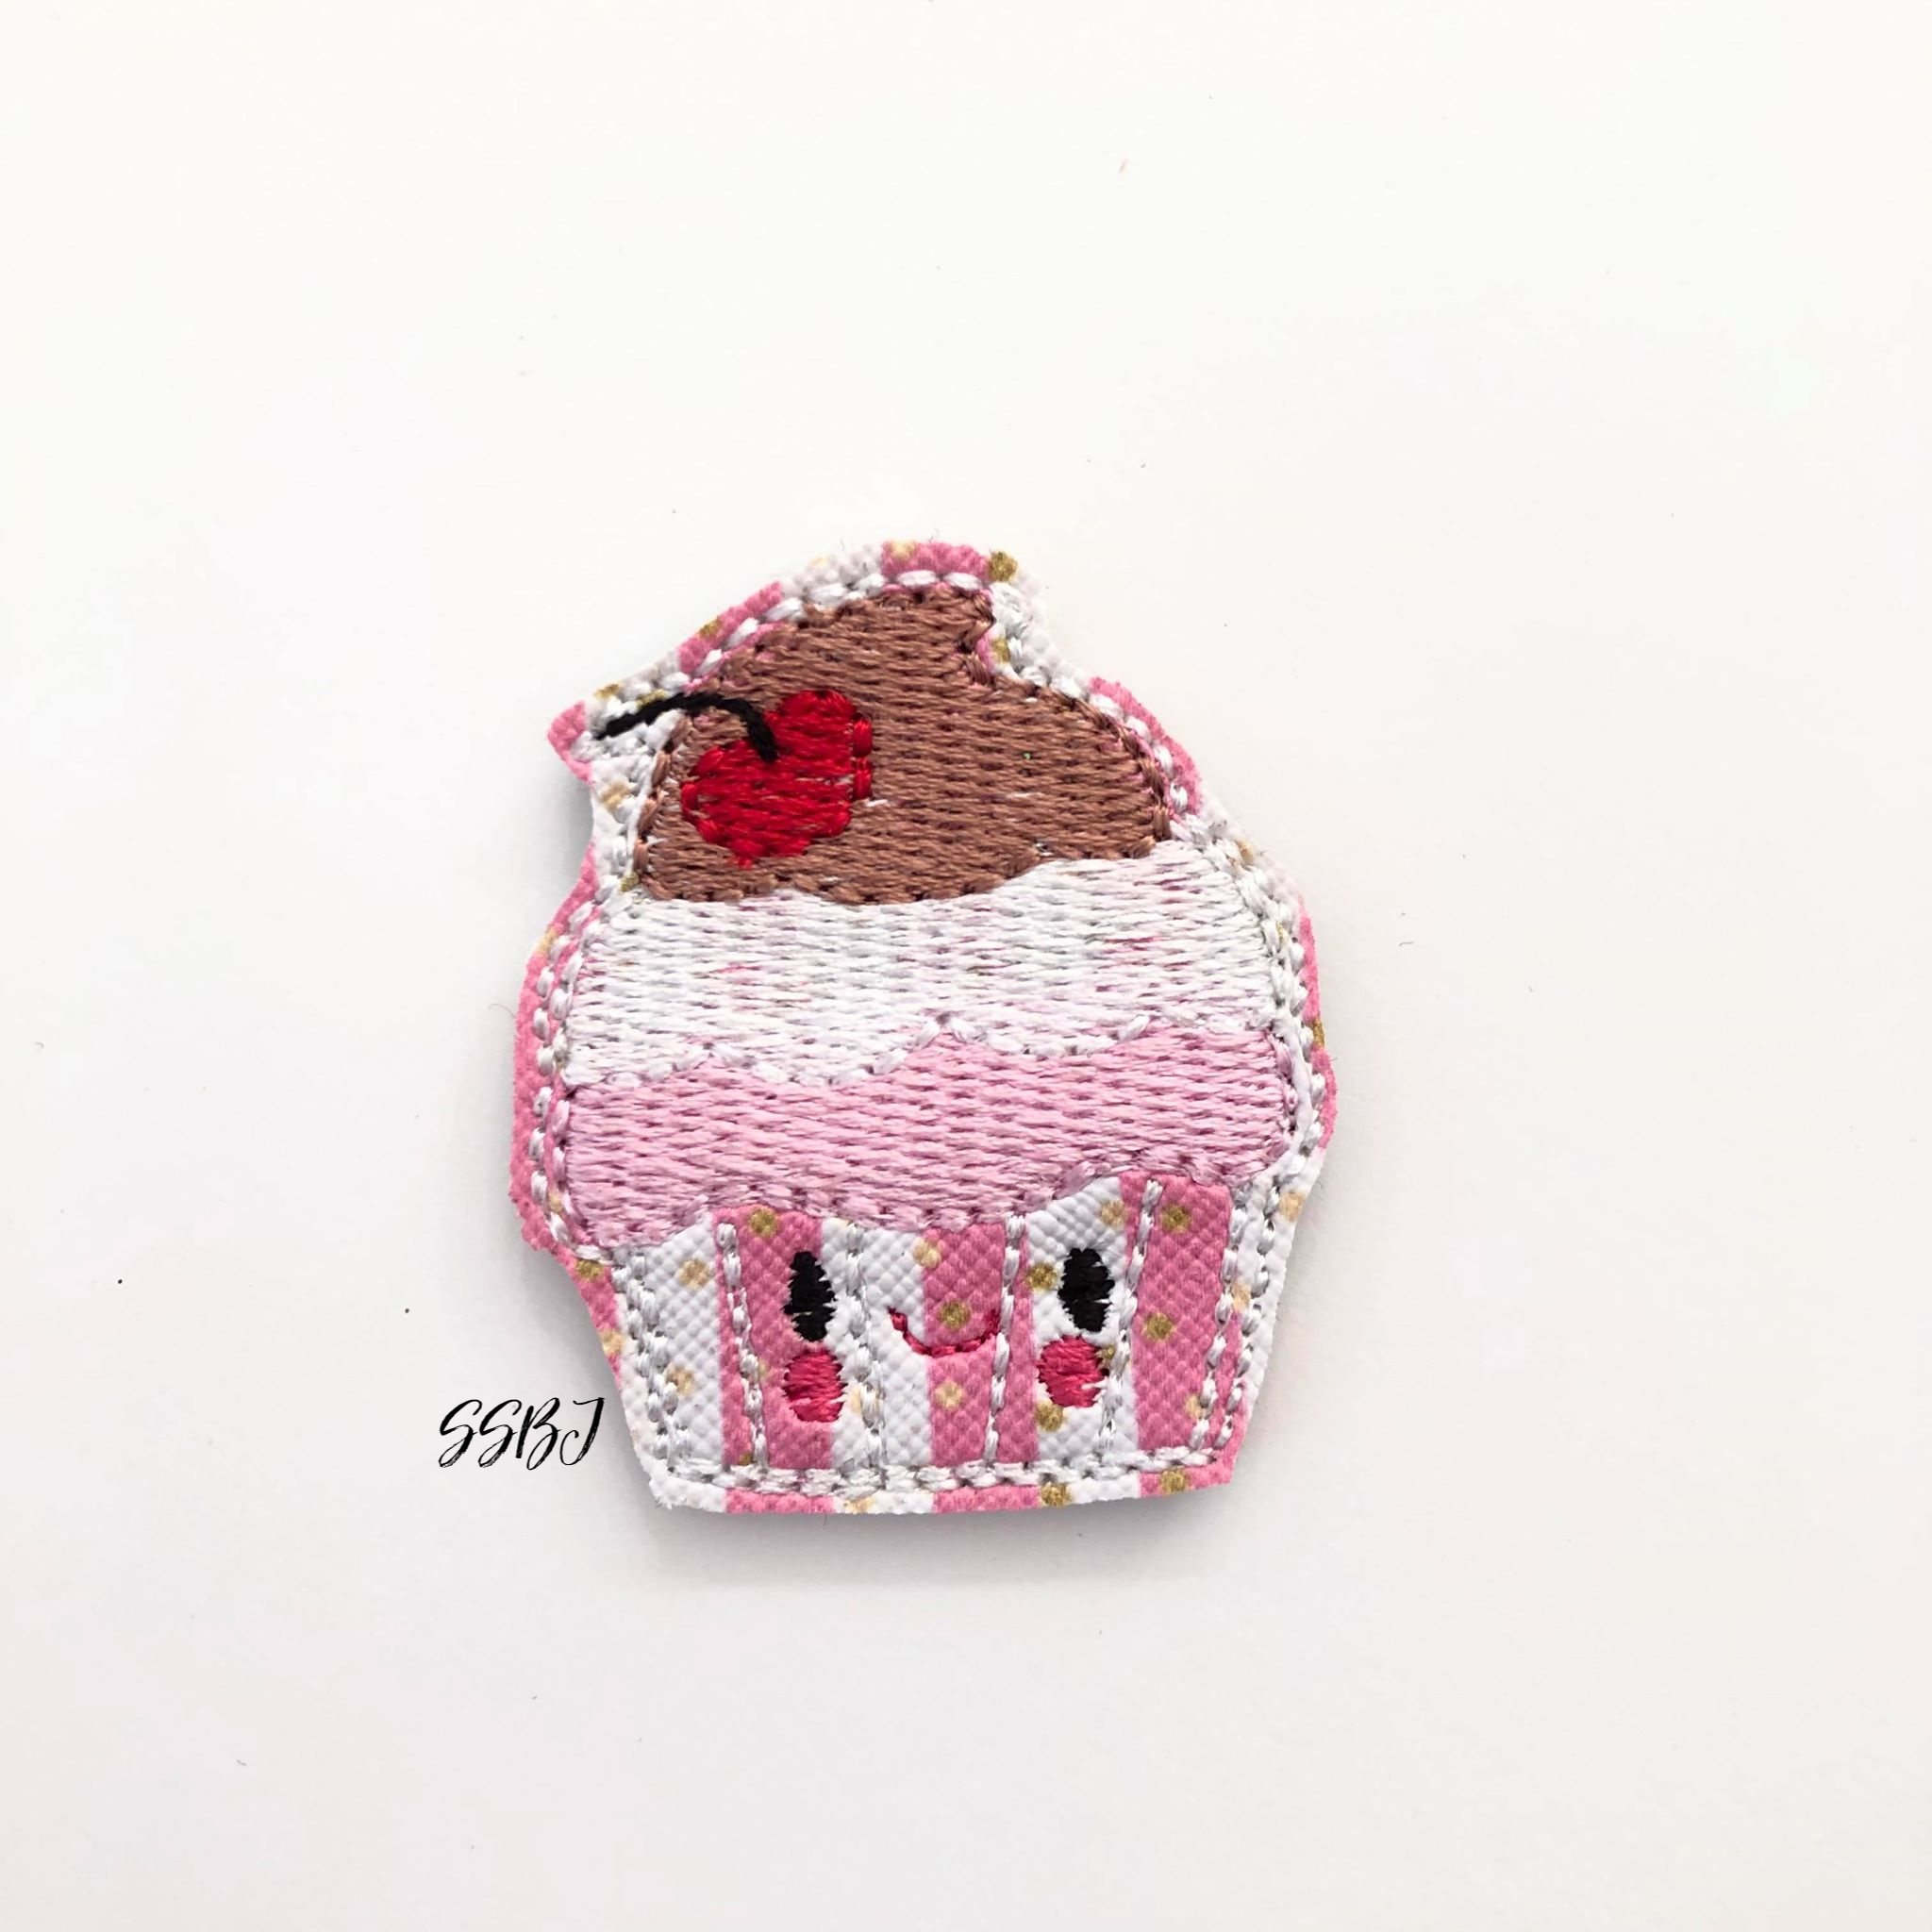 SSBJ Cupcake Trio Embroidery File